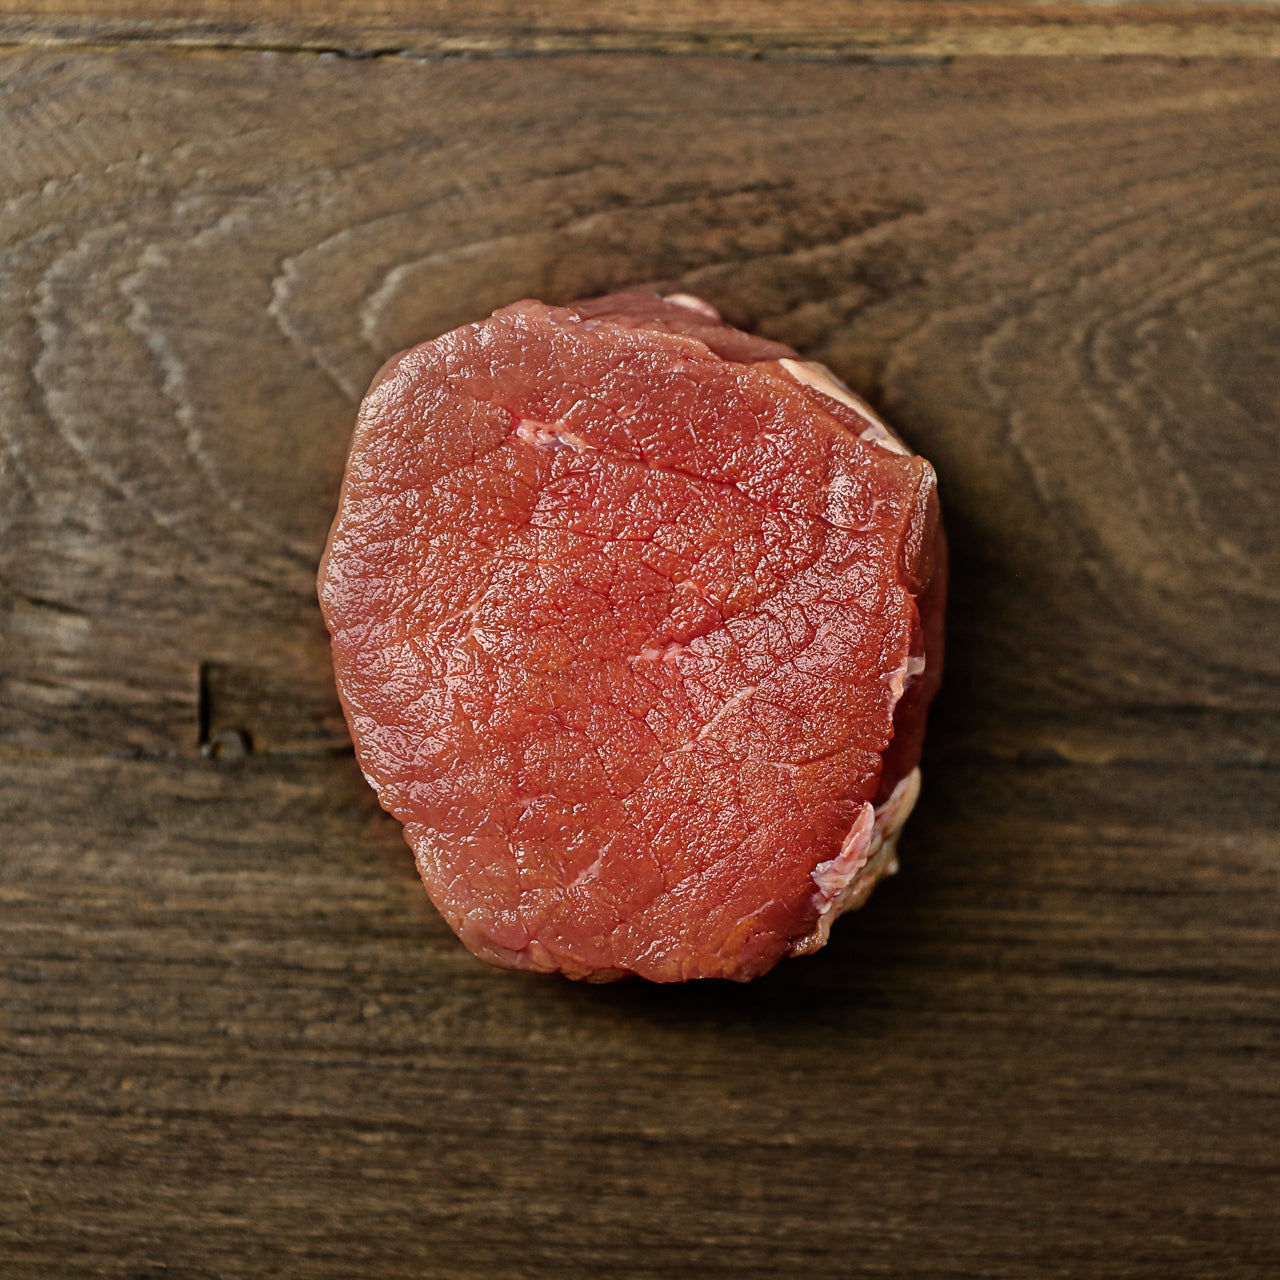 Grass-Fed Grass-Fed Pasture-Finished Eye Round Steak